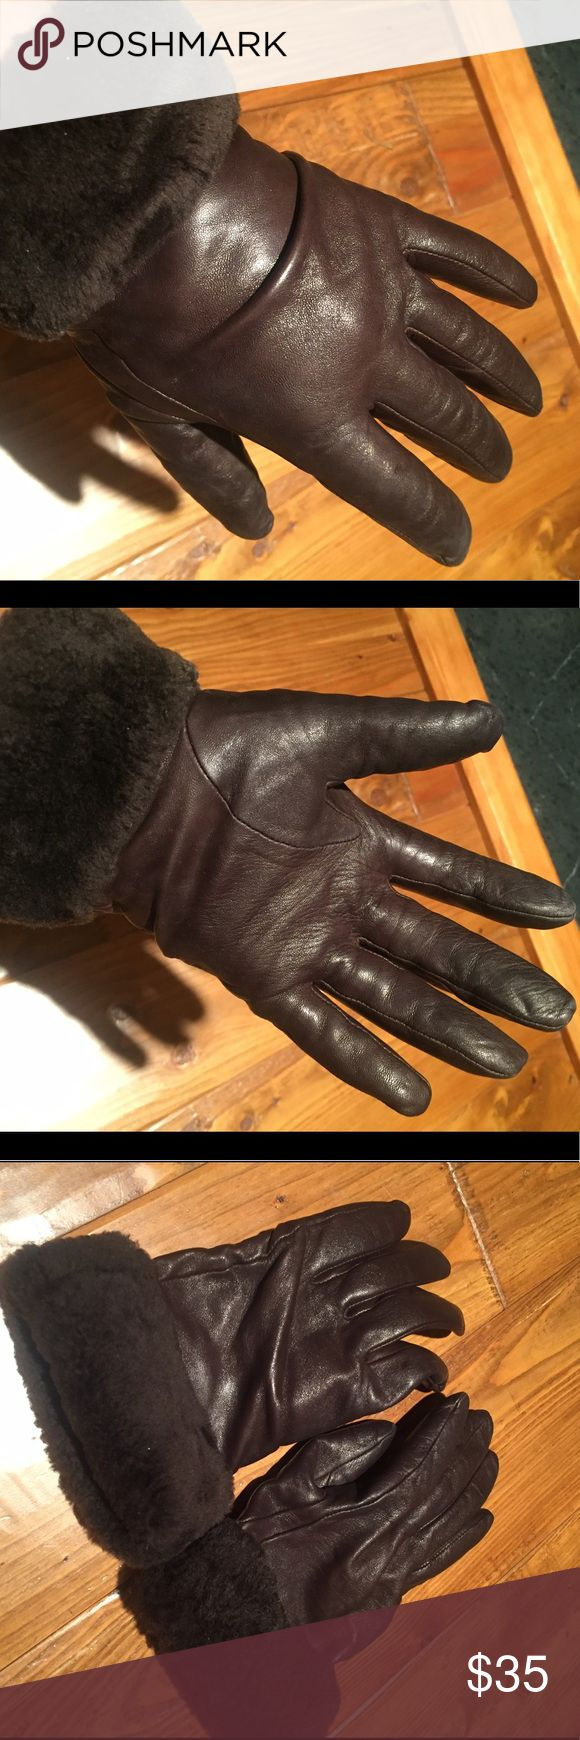 Tiger leather driving gloves - Ugg Brown Leather Gloves Amazing Brown Leather Gloves Size S M Ugg Accessories Gloves